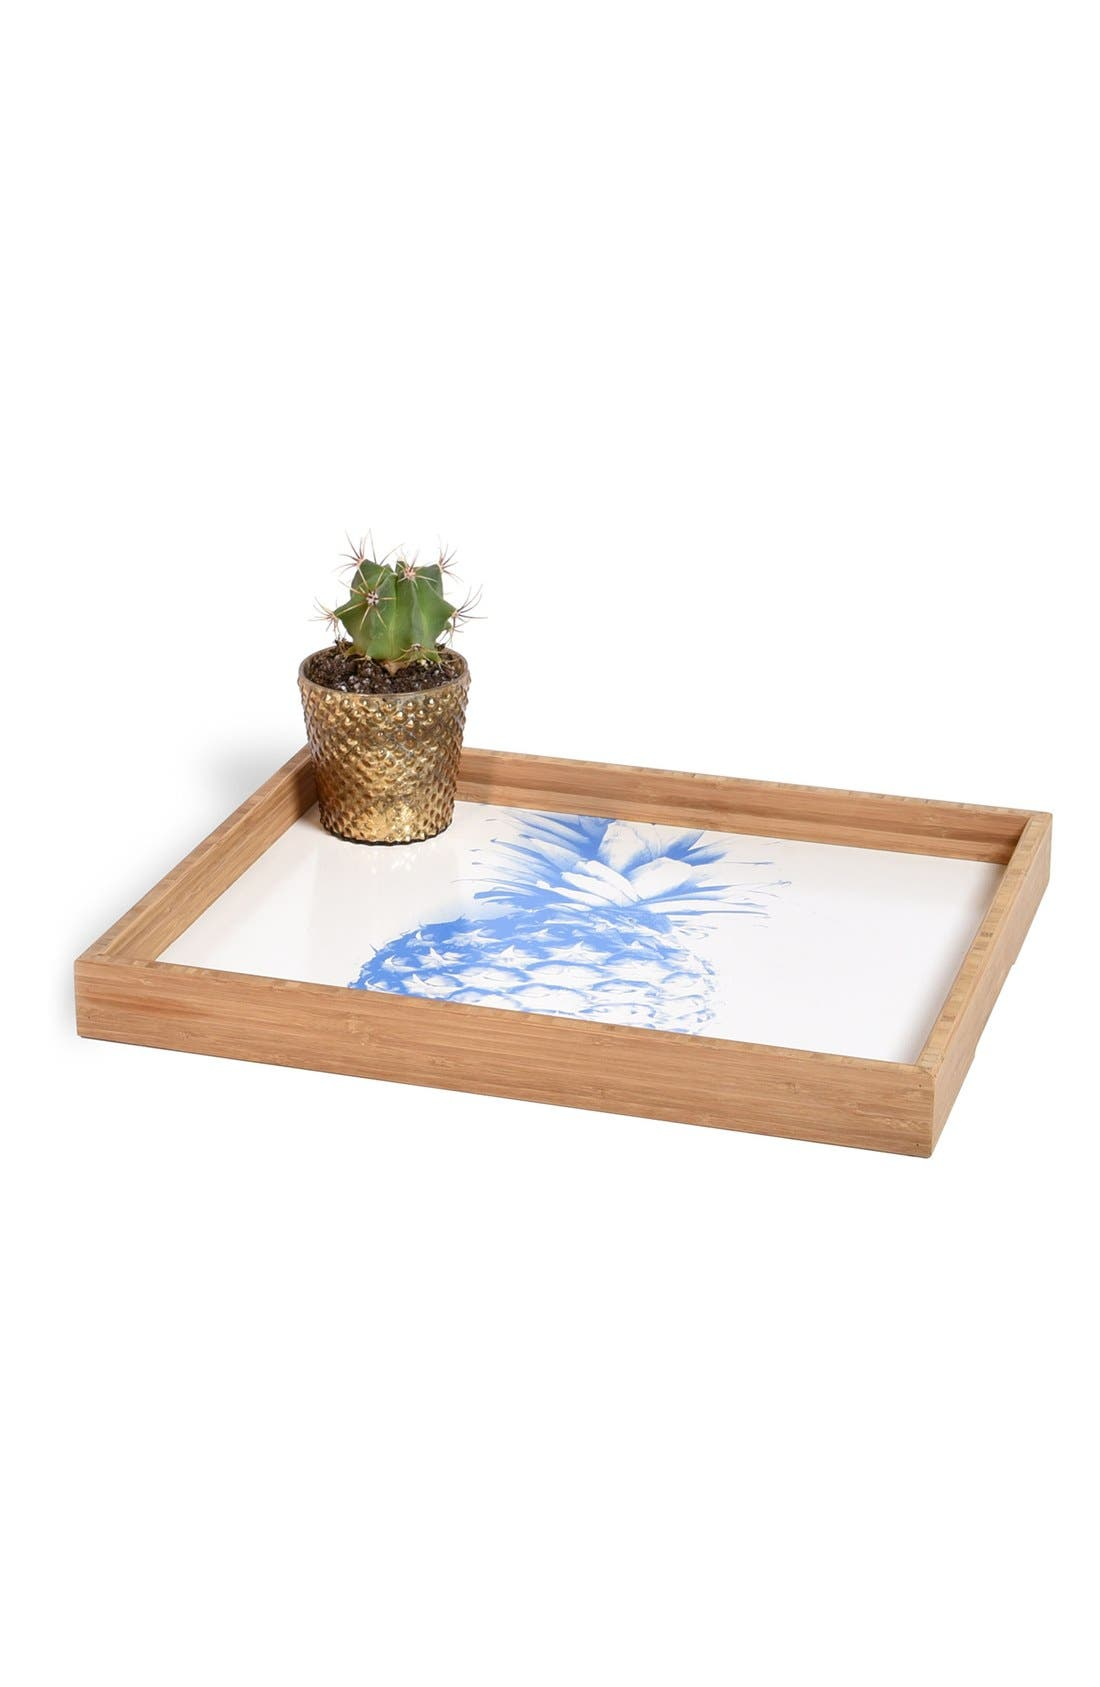 'Pineapple' Decorative Serving Tray,                             Alternate thumbnail 3, color,                             400